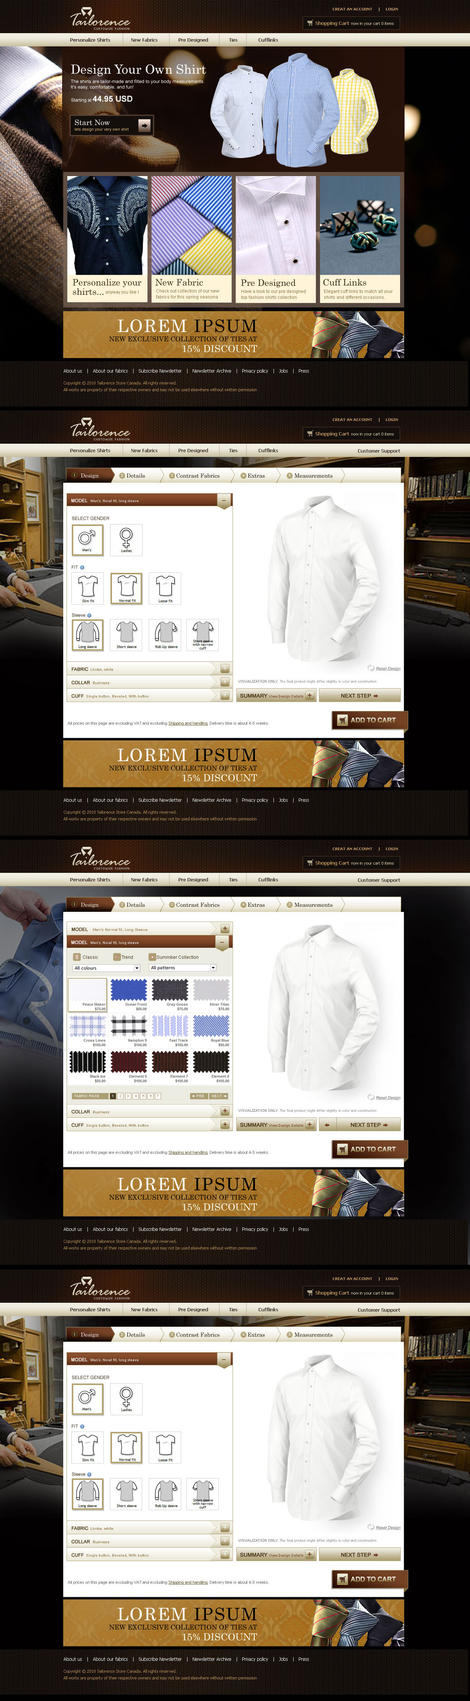 Tailorence Web by 11thagency